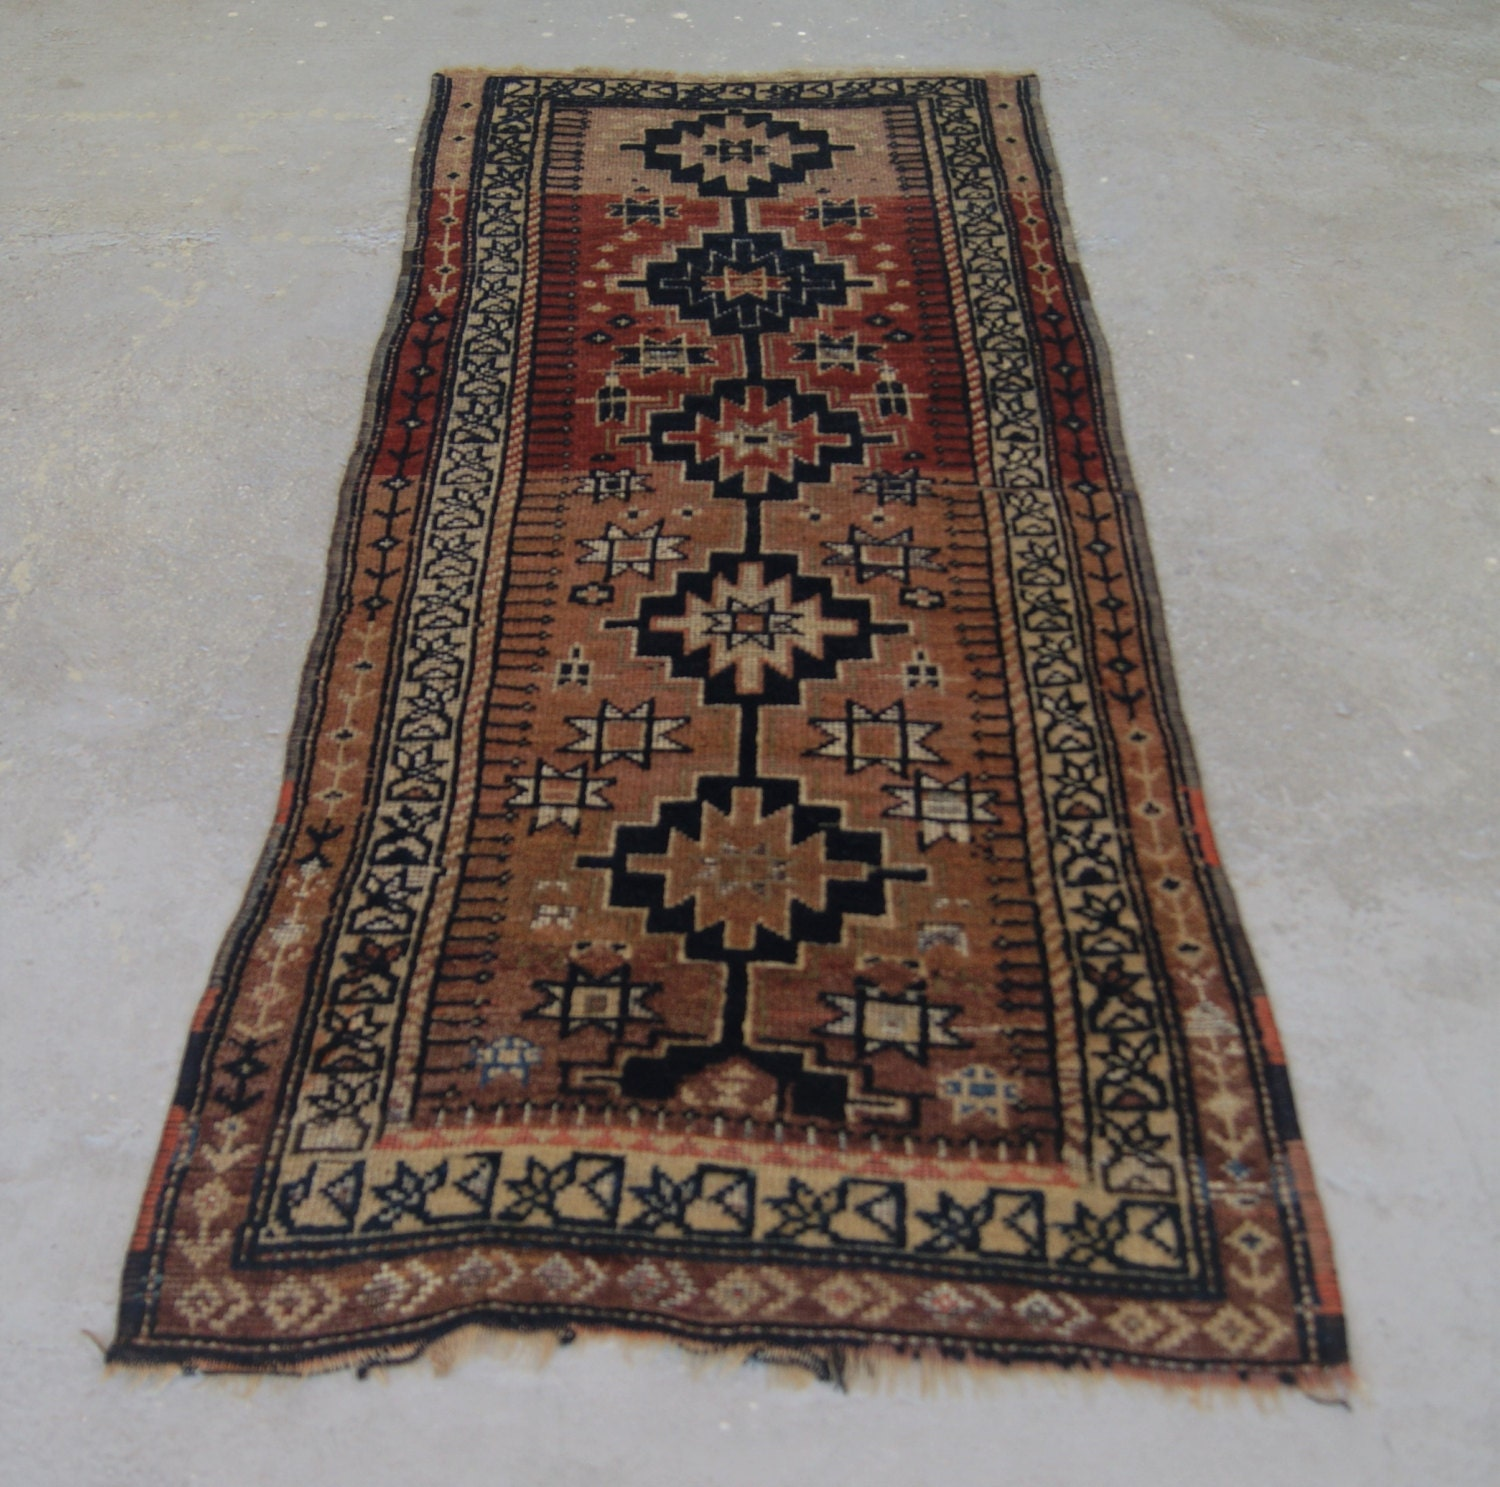 2'10x7'4 Anatolian Runner Rug Antique